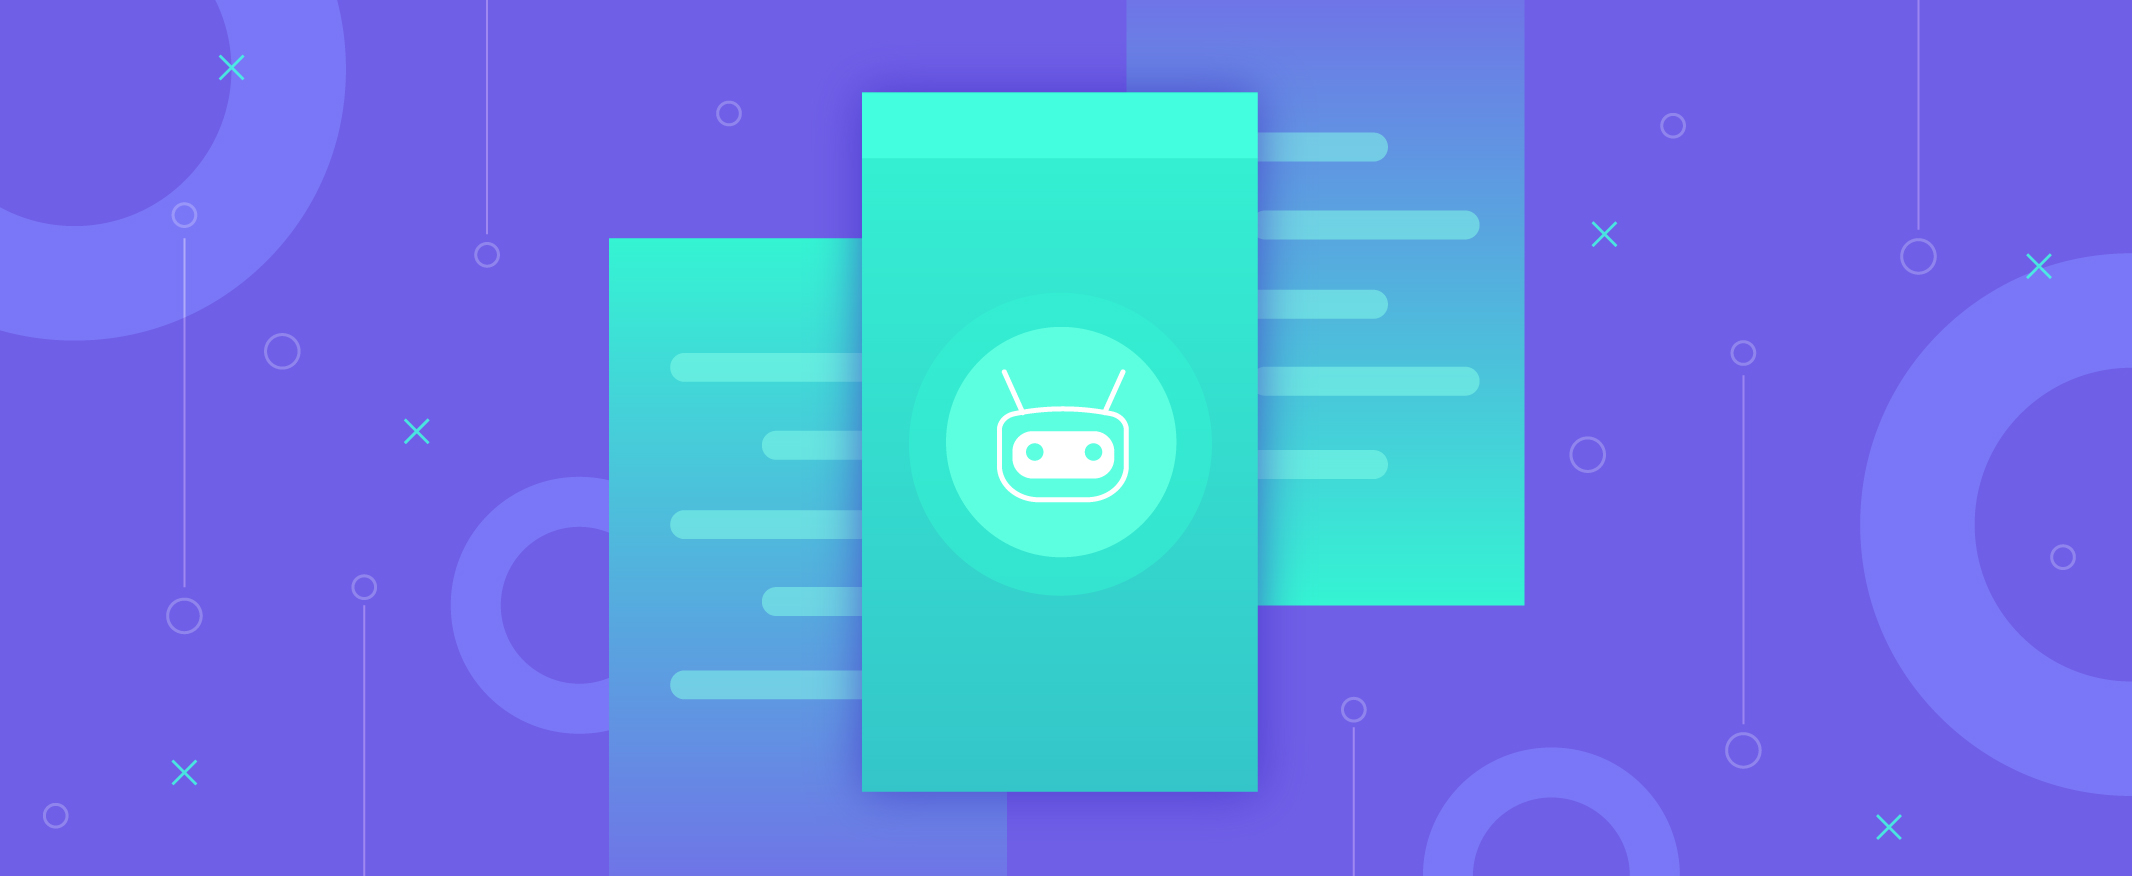 What Good Can Chatbots Do for You